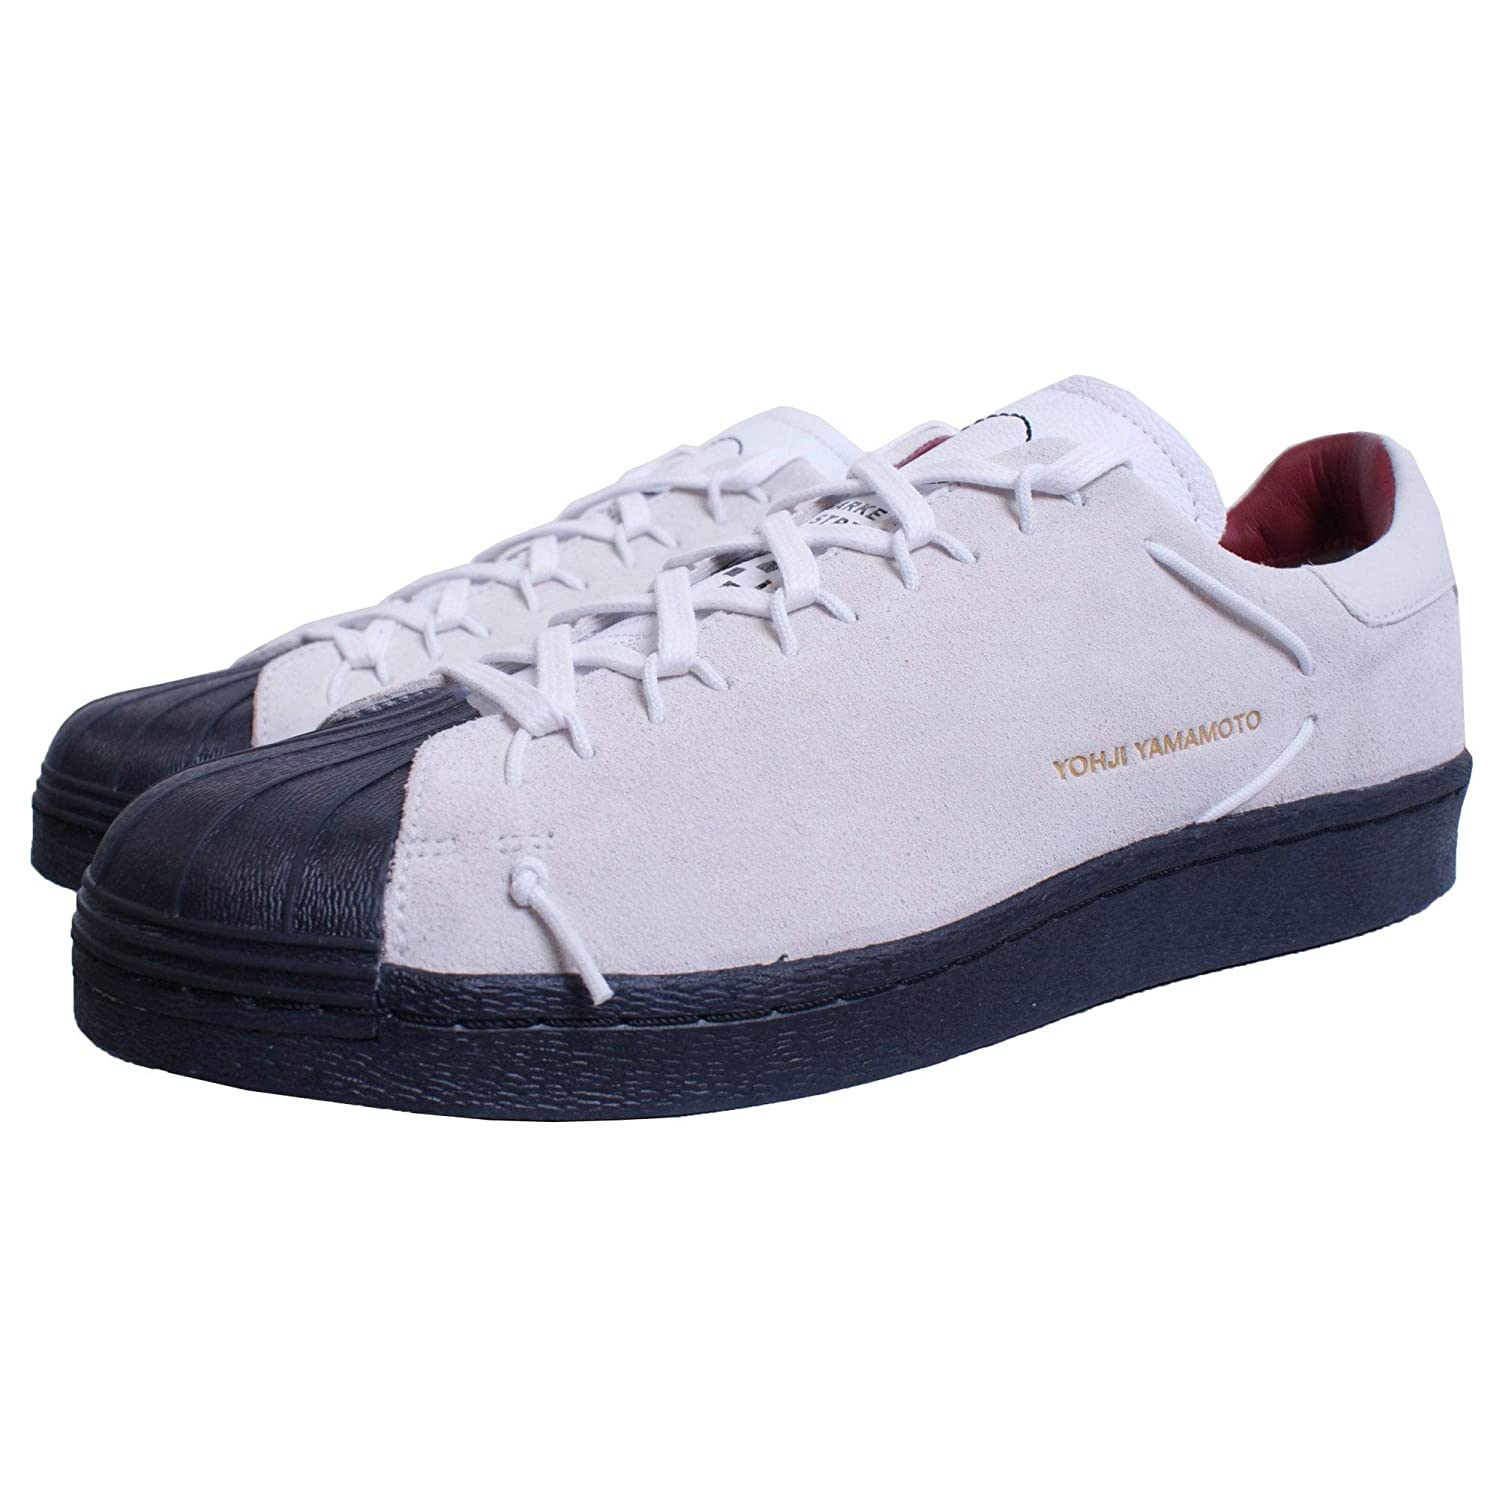 Gentlemen/Ladies adidas Y-3 Superknot Leather Leather Leather Beige New market Various types and styles Maintenance capability bb698b